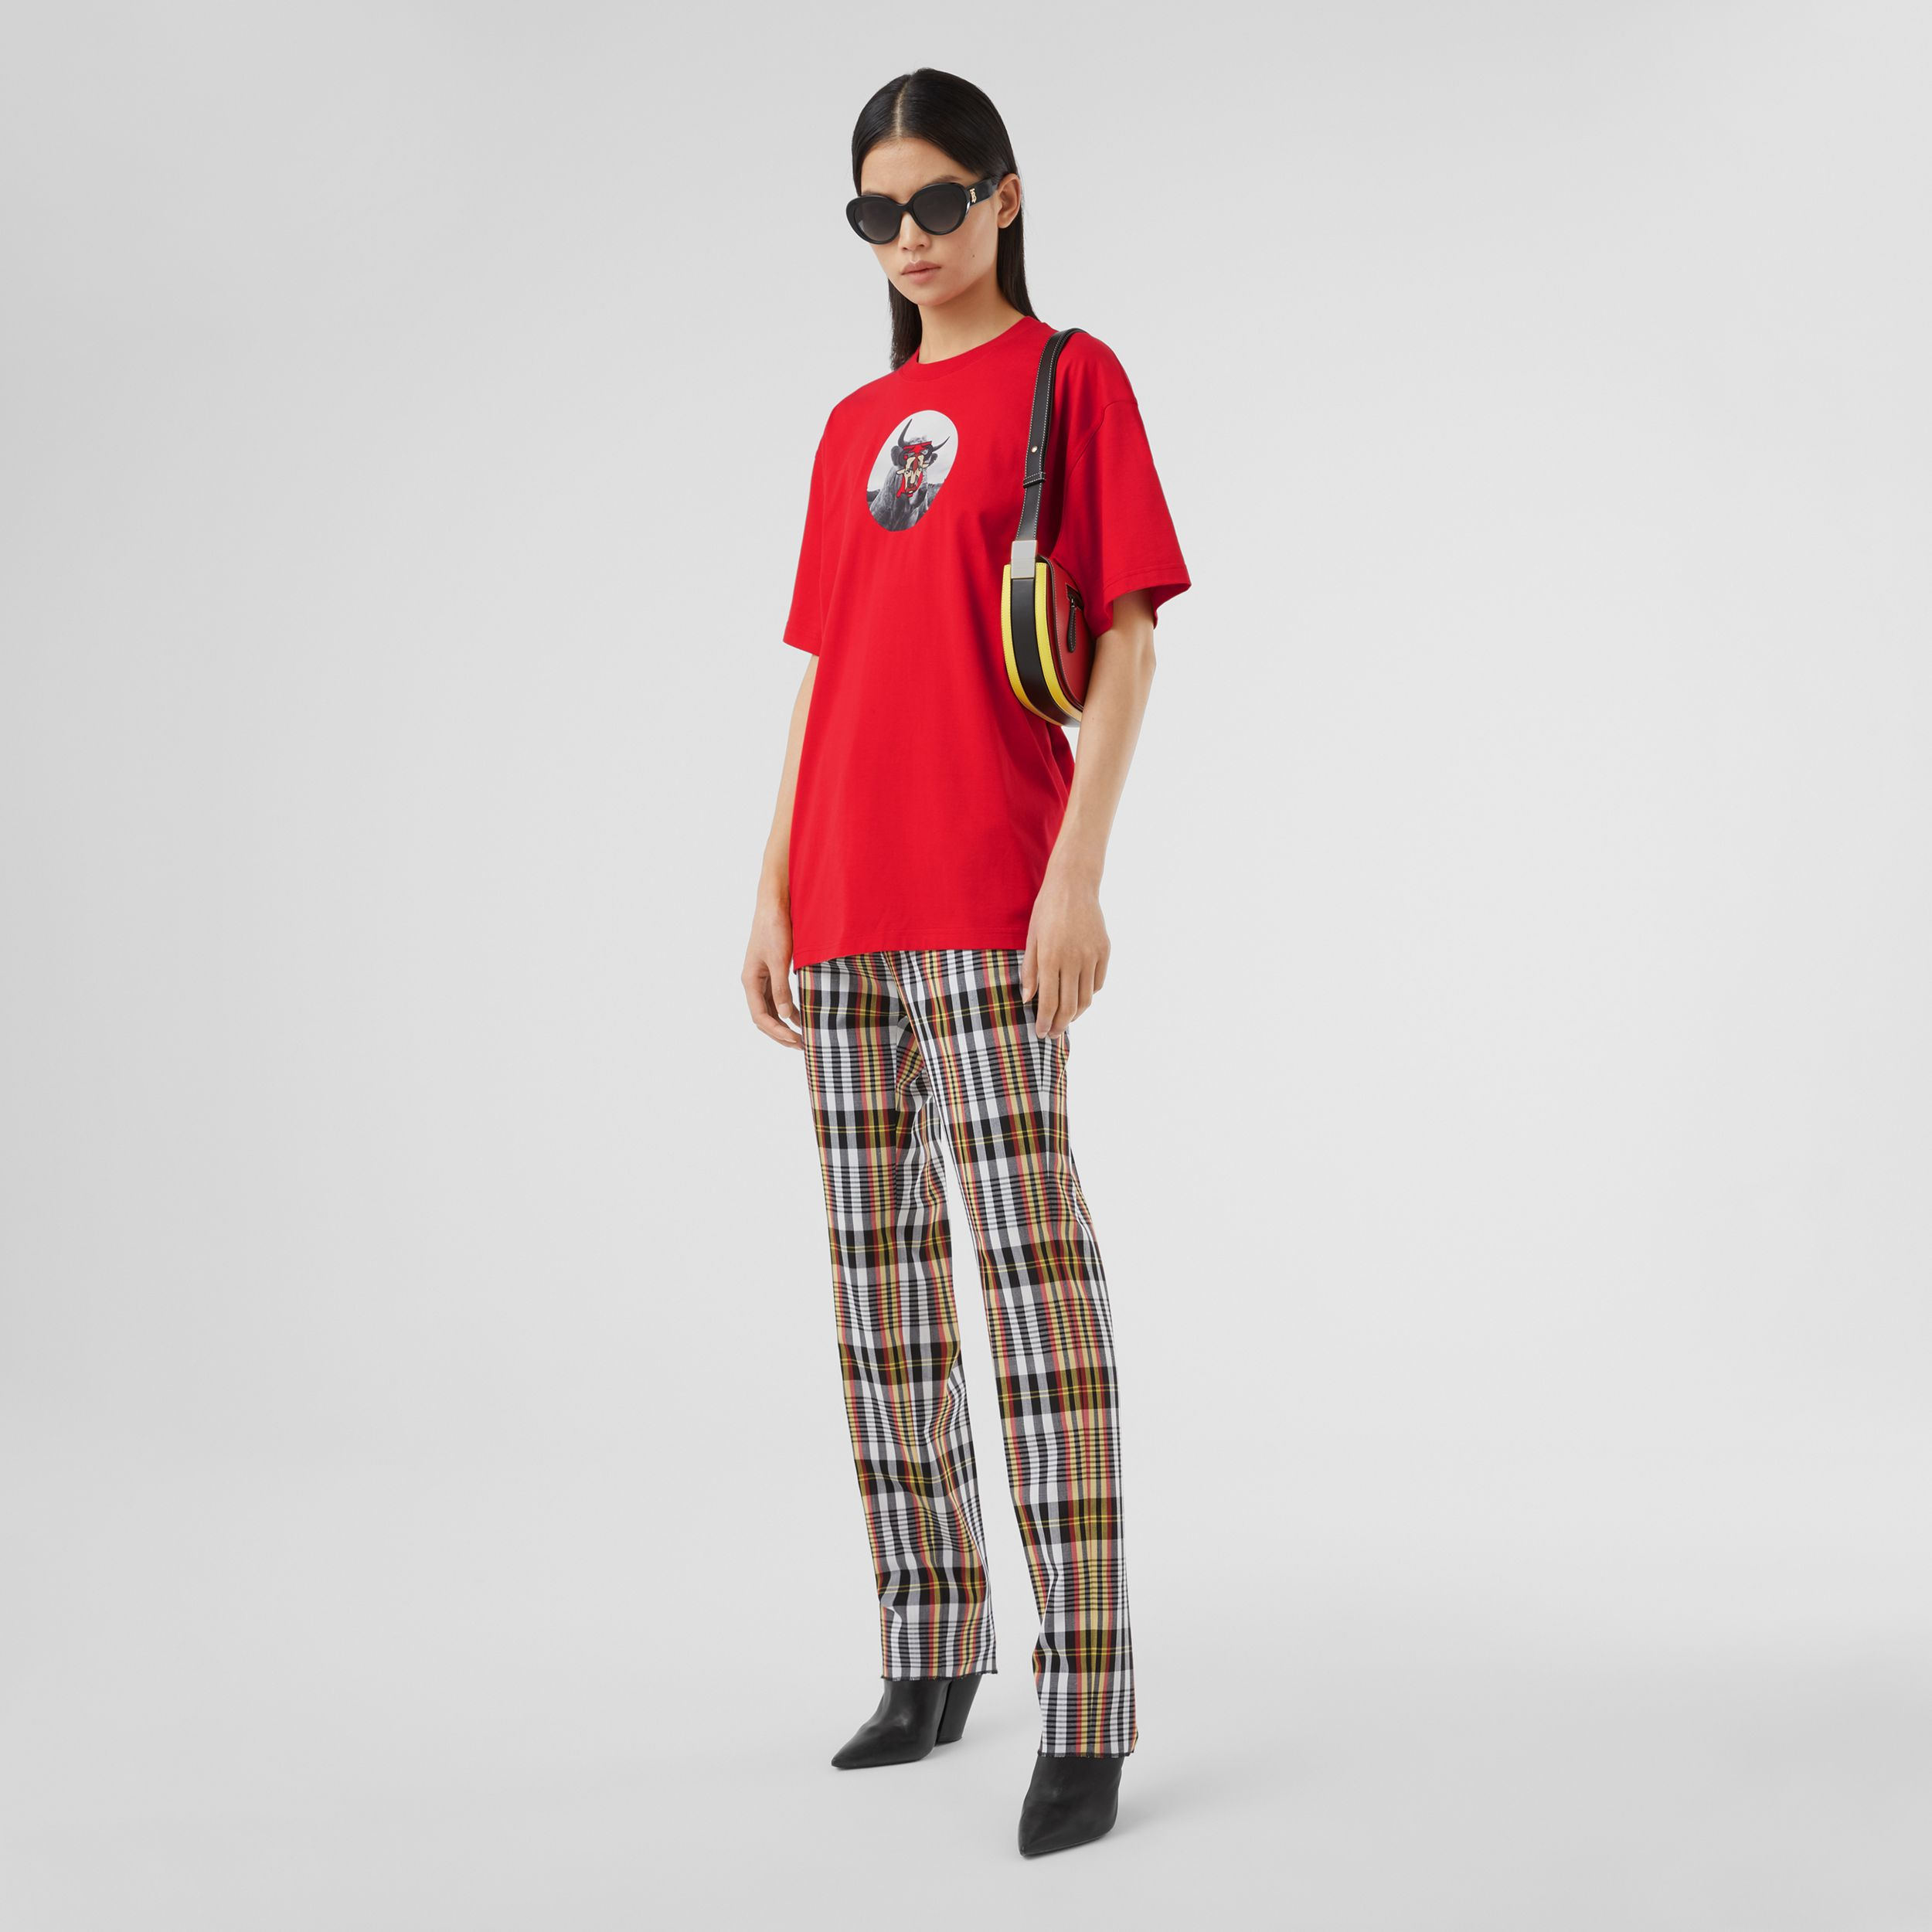 Montage Print Cotton T-shirt – Unisex in Bright Red | Burberry Australia - 4